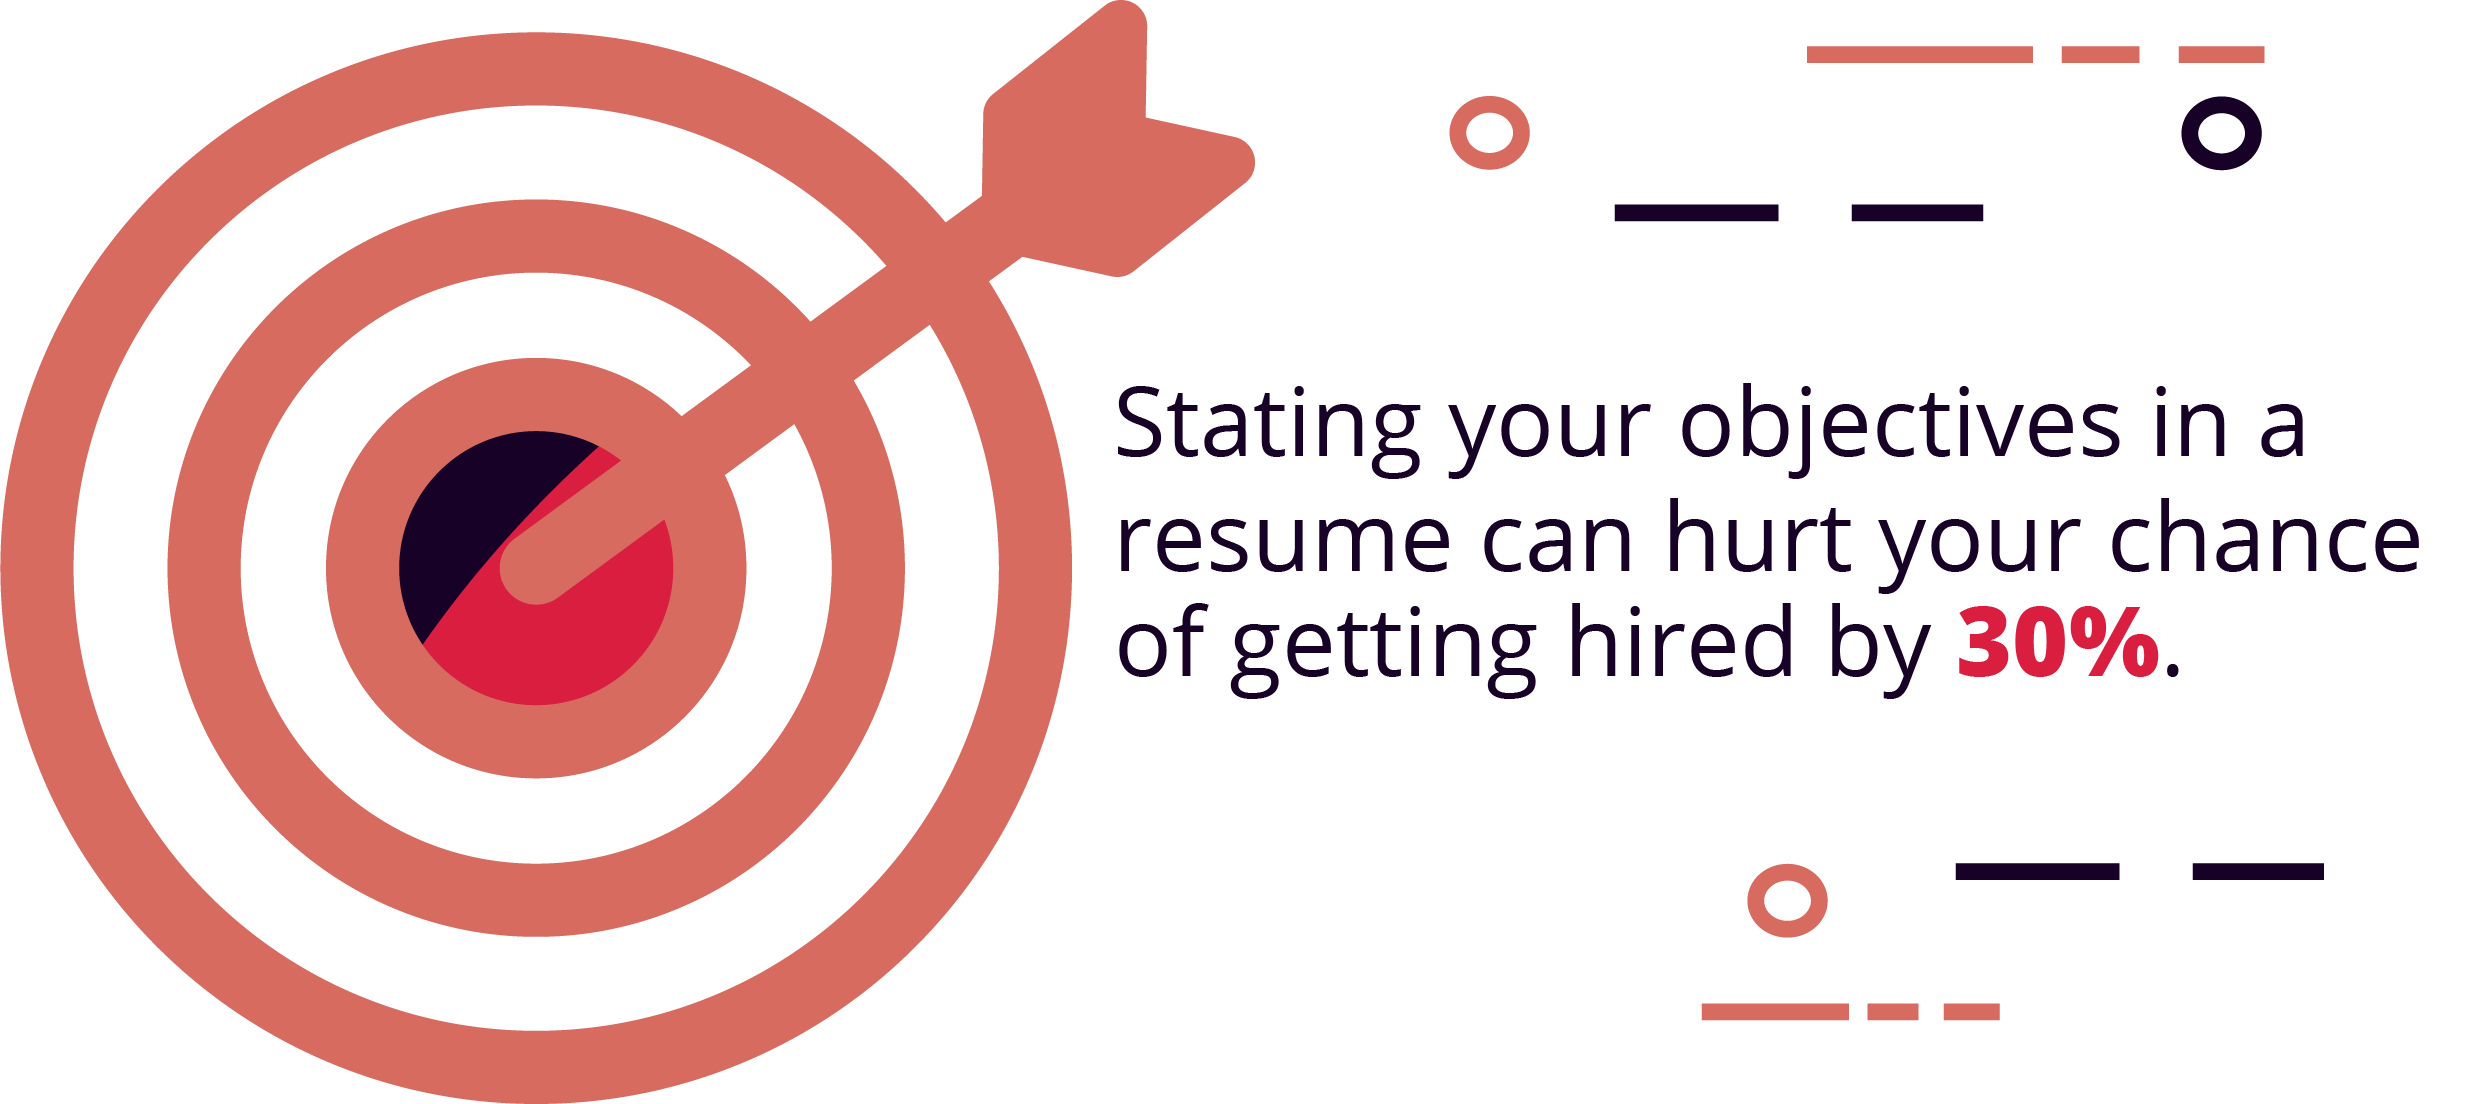 """Putting an """"objectives"""" section on your resume could hurt your chances 30%"""